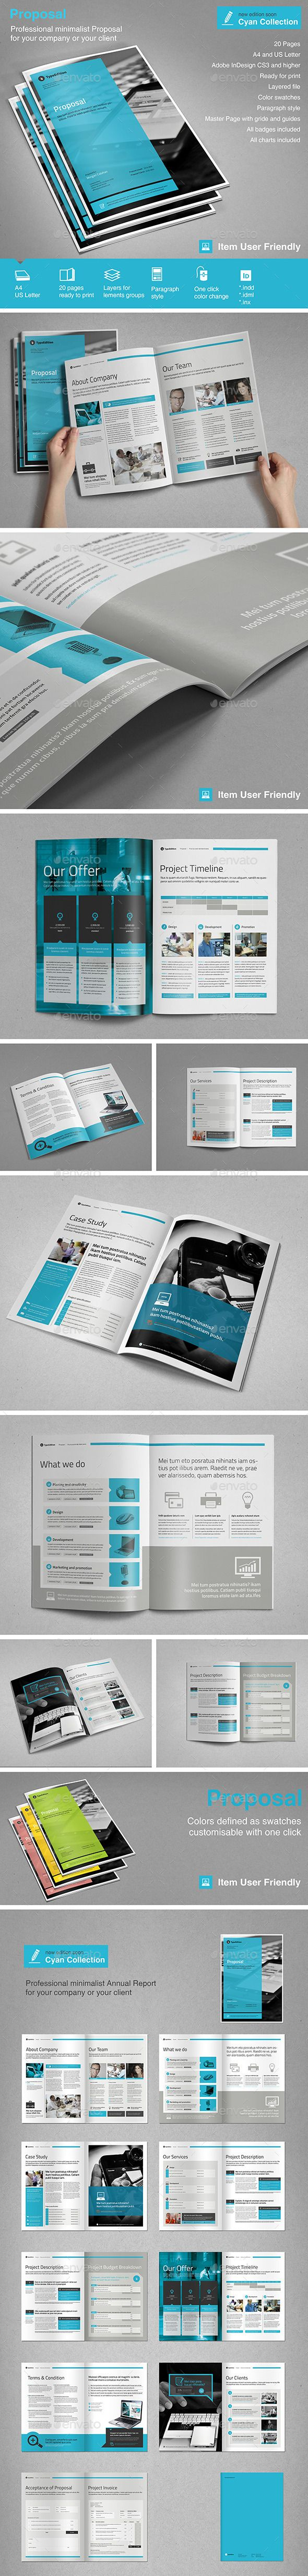 Proposal by TypoEdition Proposal. This is a modern and powerful template for a Proposal.20 pages possibility of creating many unique spreads. Features Ado